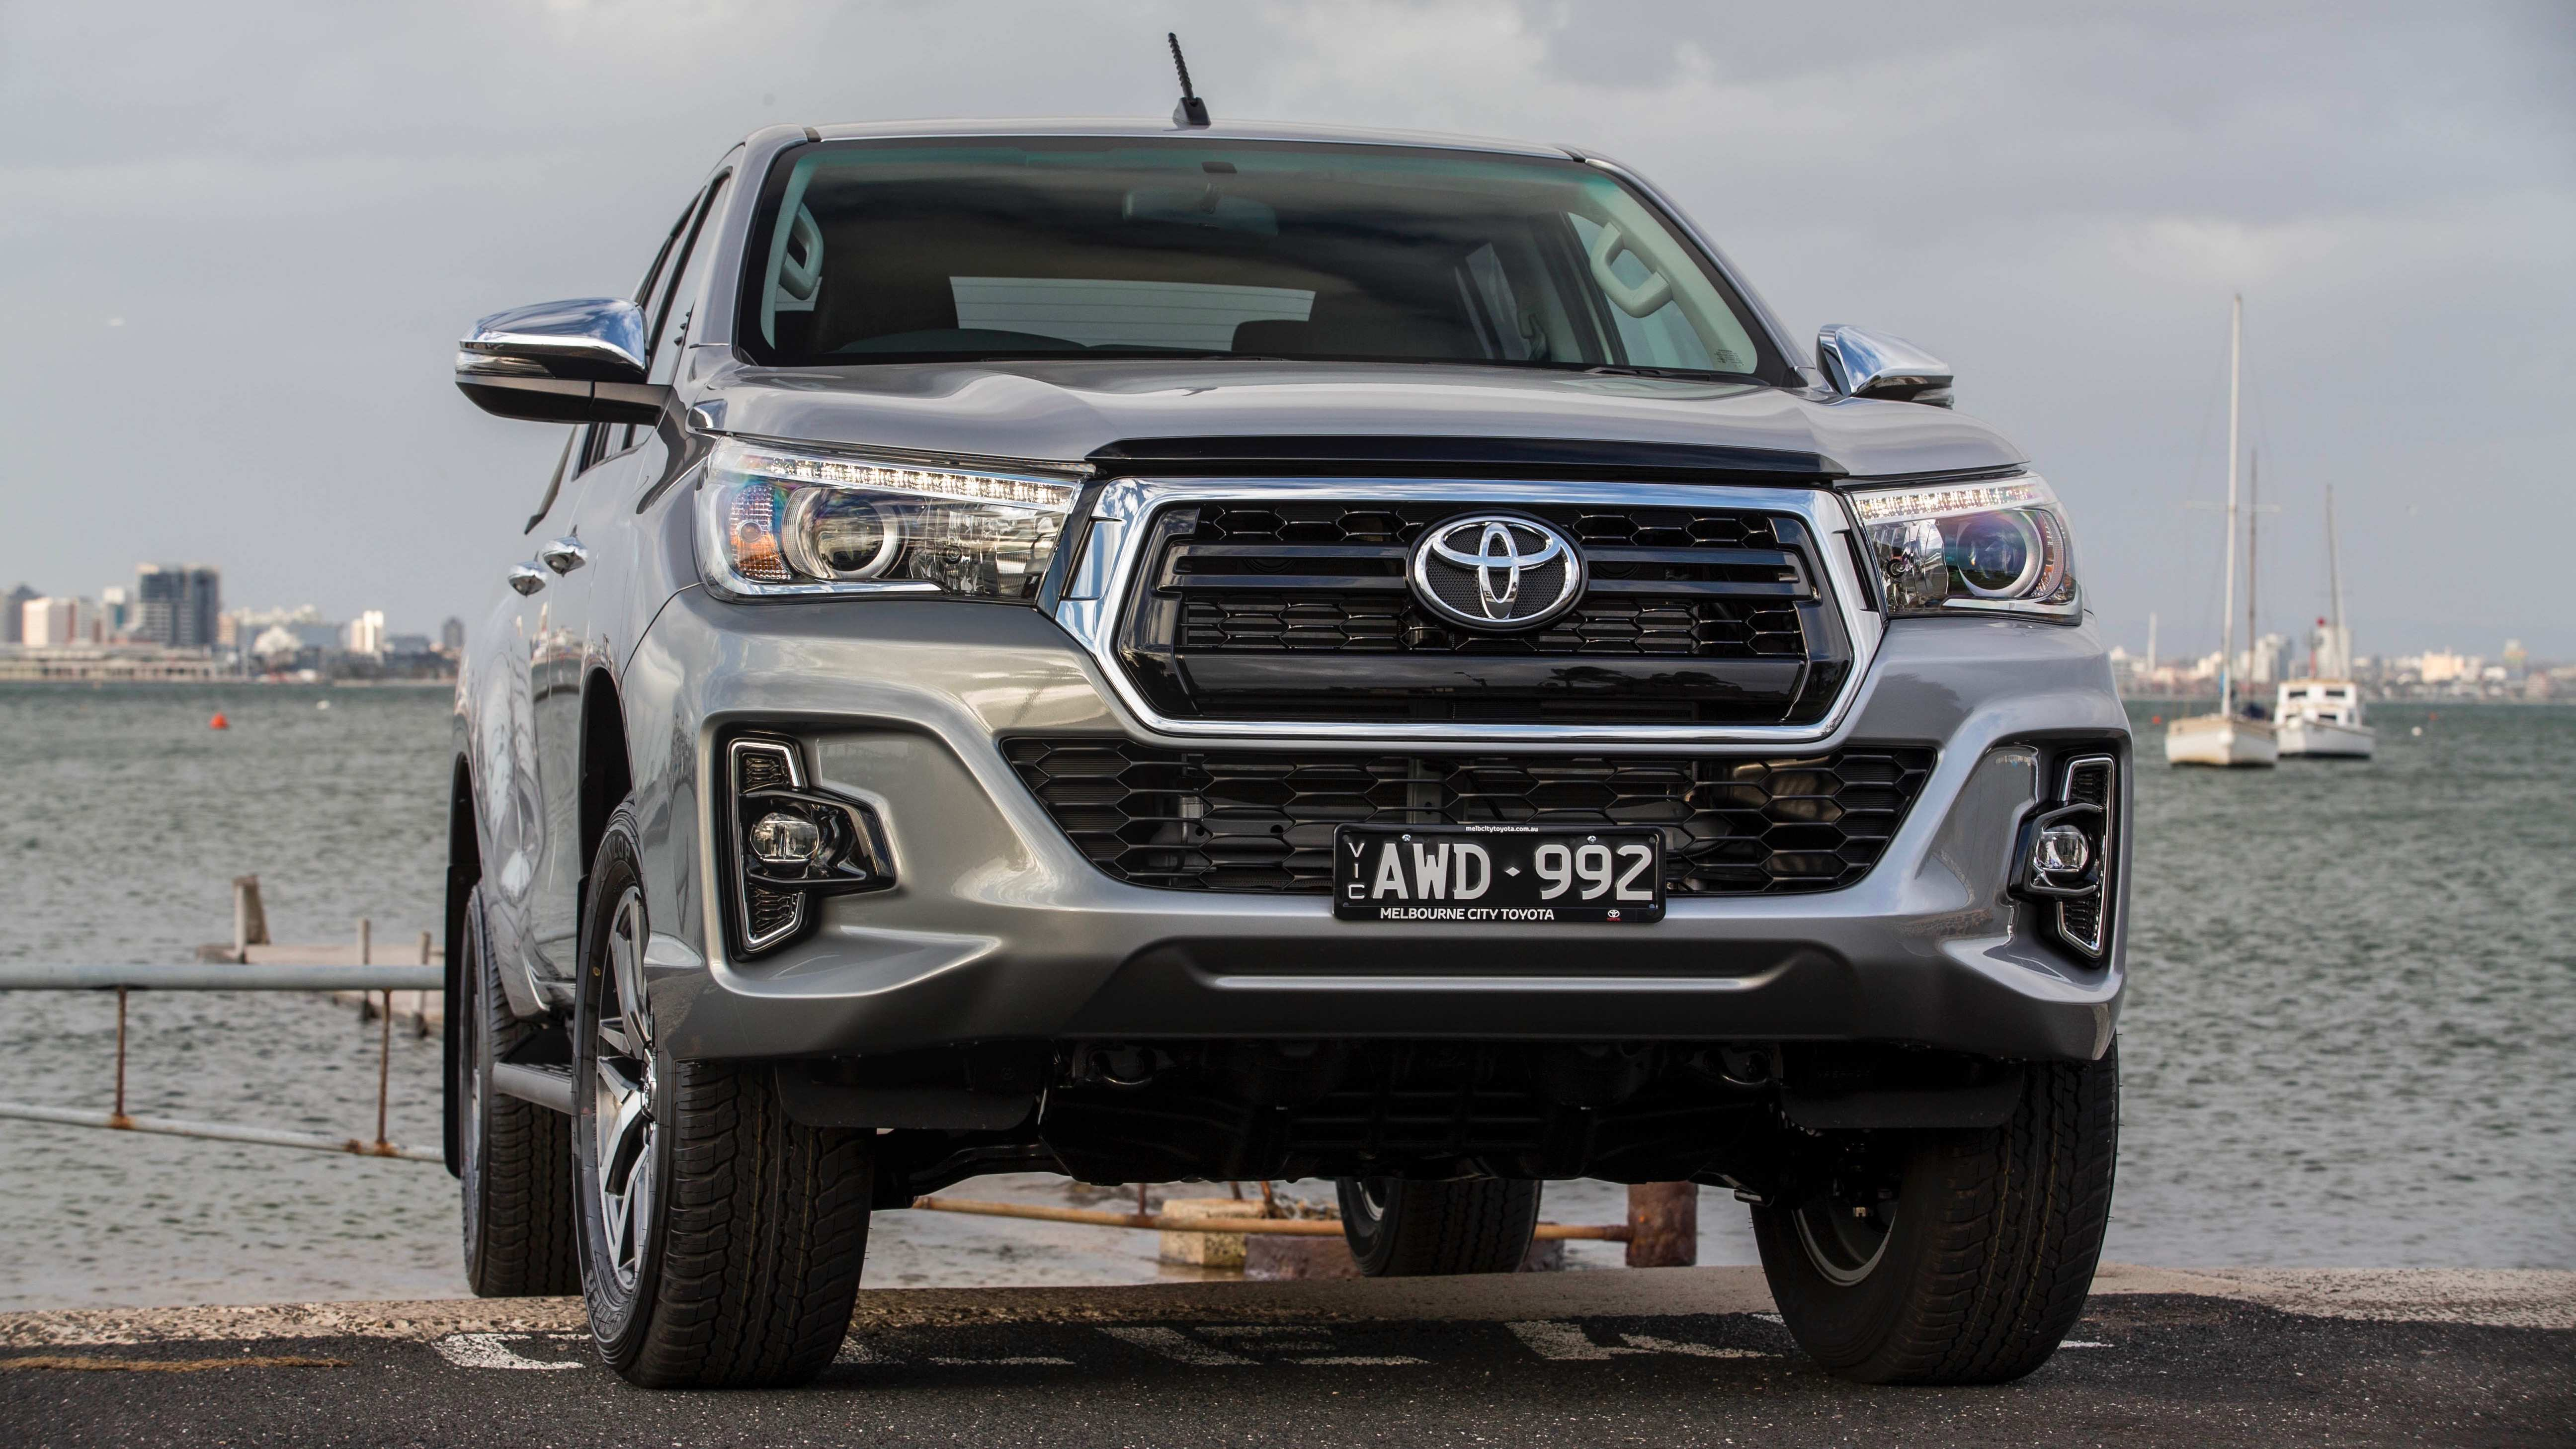 23 Best Review 2019 Toyota Hilux Facelift New Review for 2019 Toyota Hilux Facelift